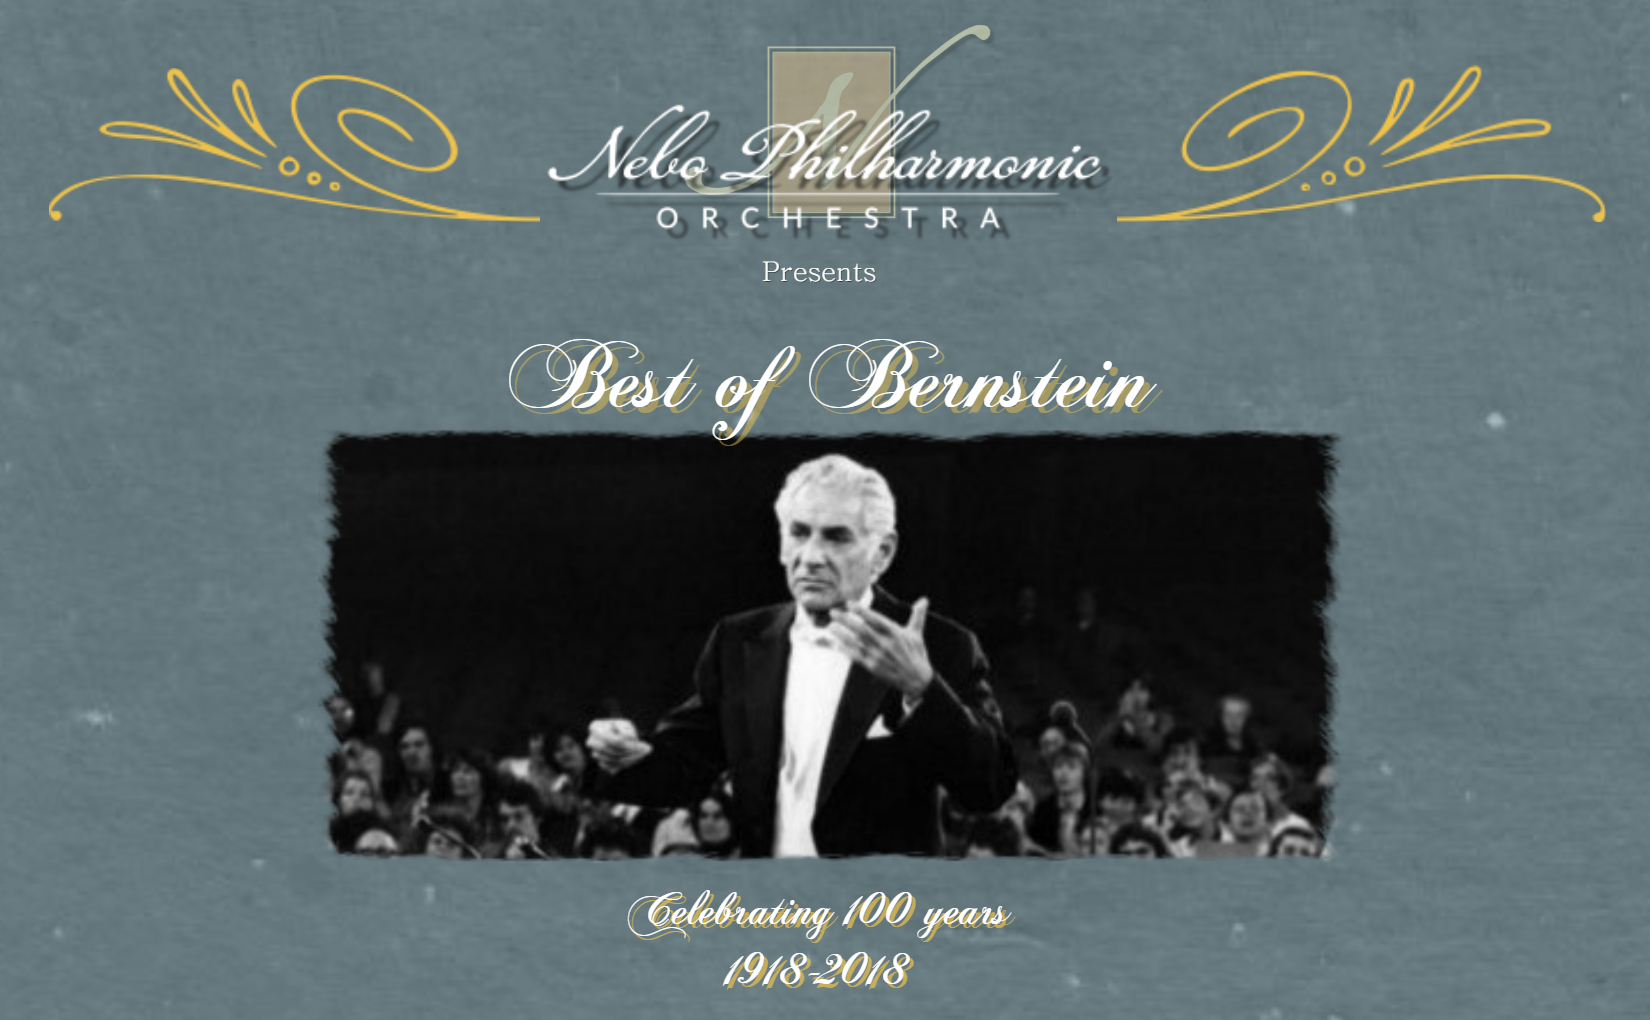 Oct 13: Best of Bernstein